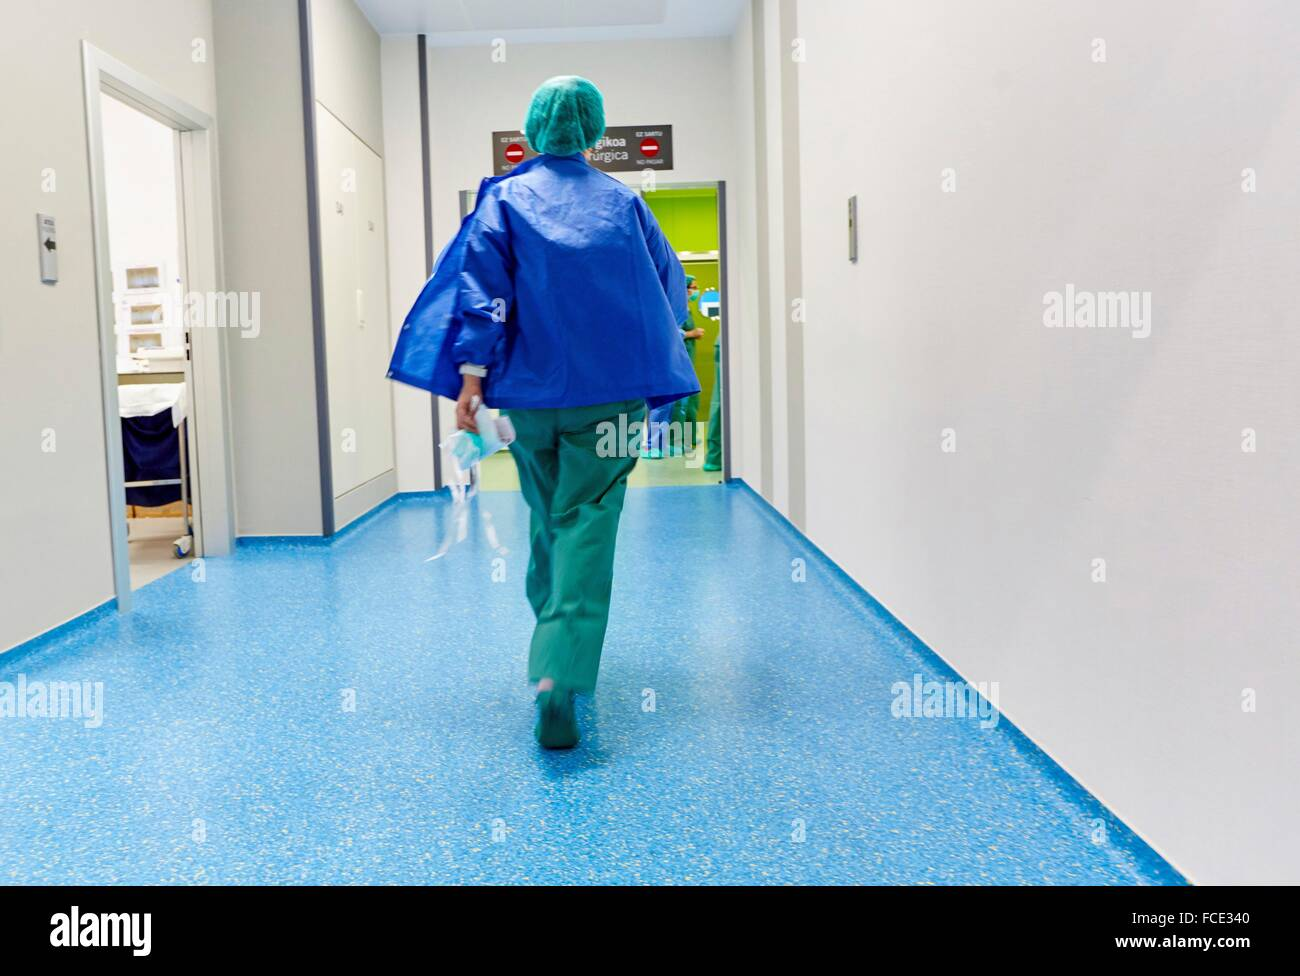 Ambulatory Surgery, Operating Theatre, Hospital Donostia, San Sebastian, Gipuzkoa, Basque Country, Spain - Stock Image